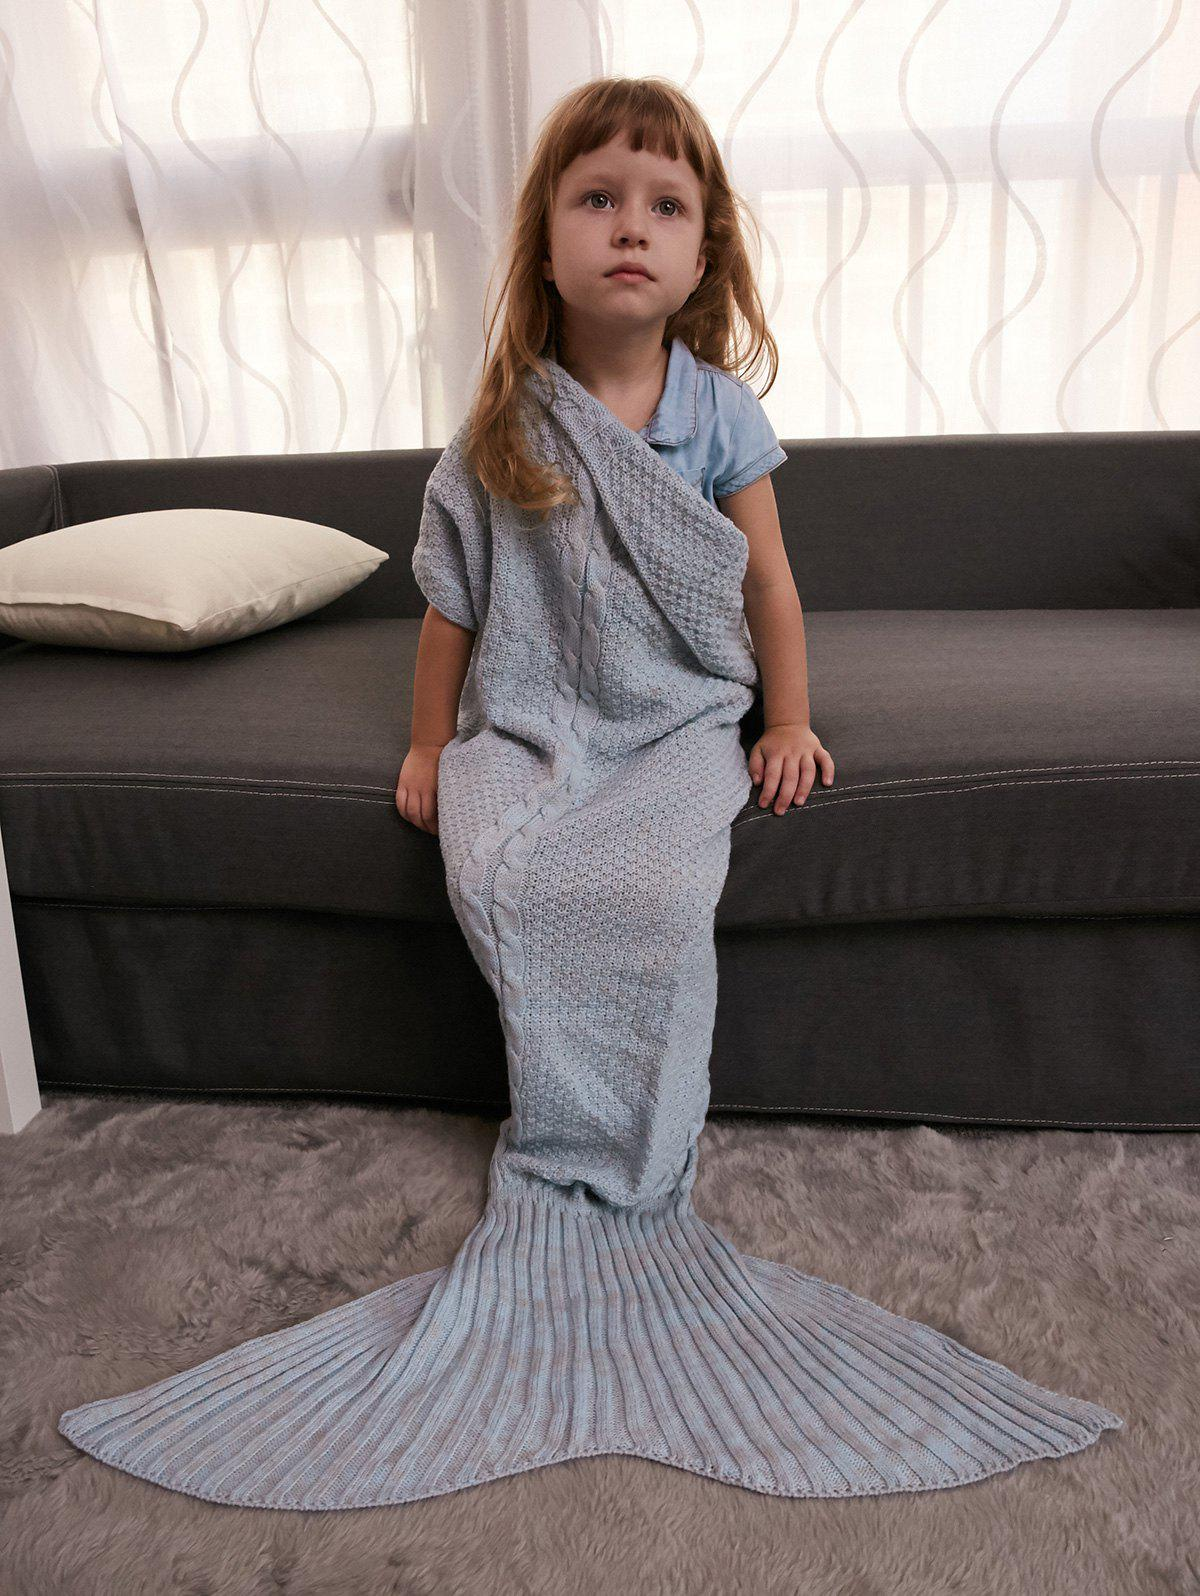 Comfortable Crochet Knitting Mermaid Tail Style Blanket For Kids lacy knitting comfortable checkered hollowed blanket for kids